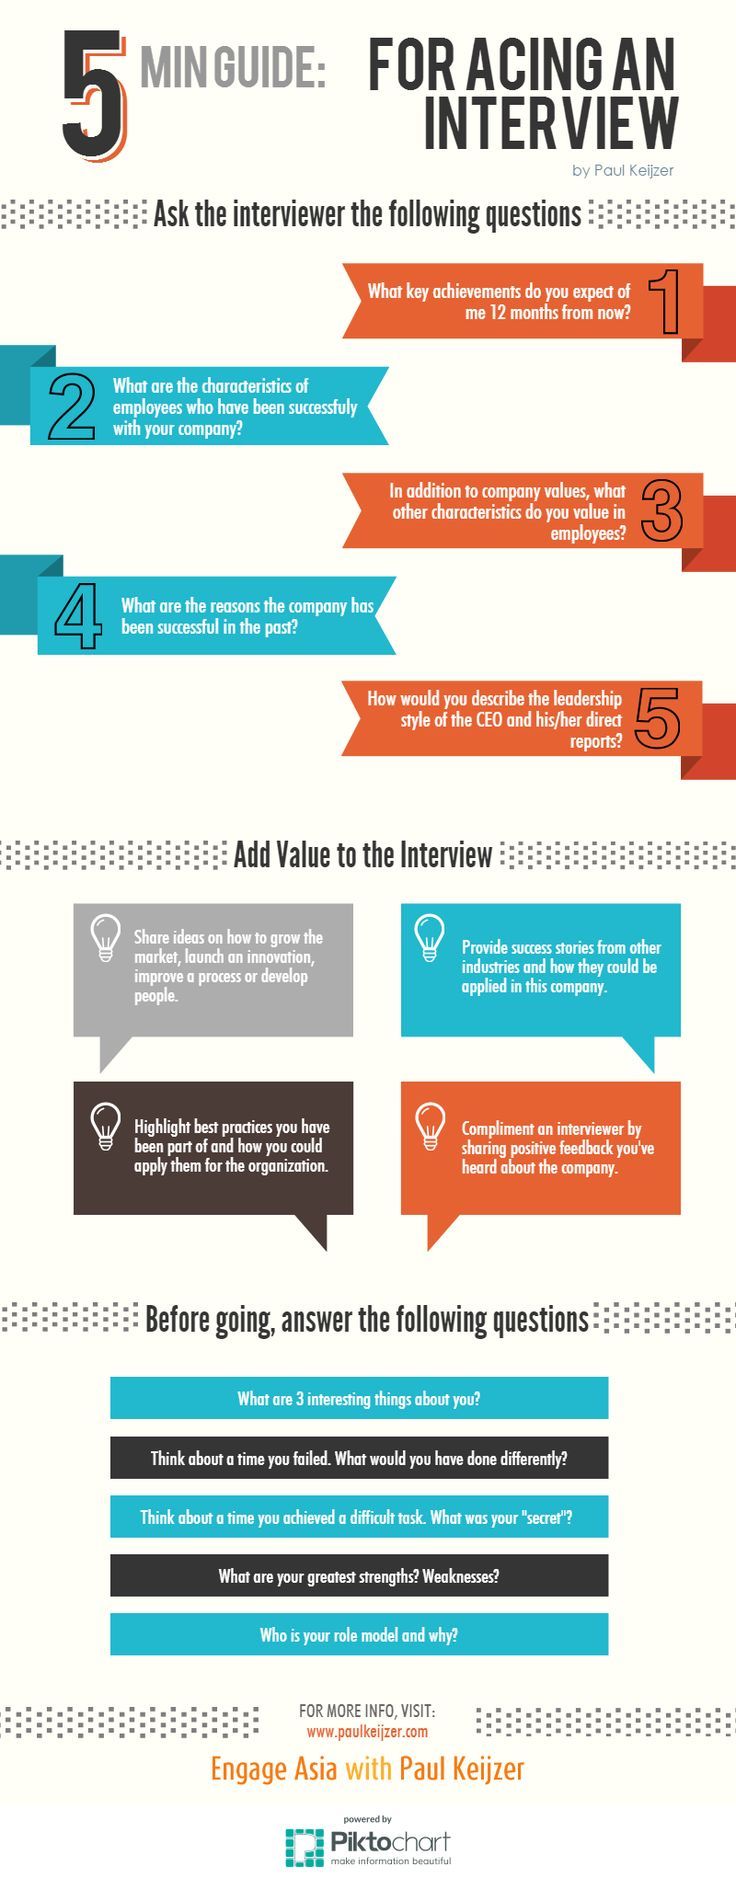 See More. The 5 Minute Guide For Acing An Interview